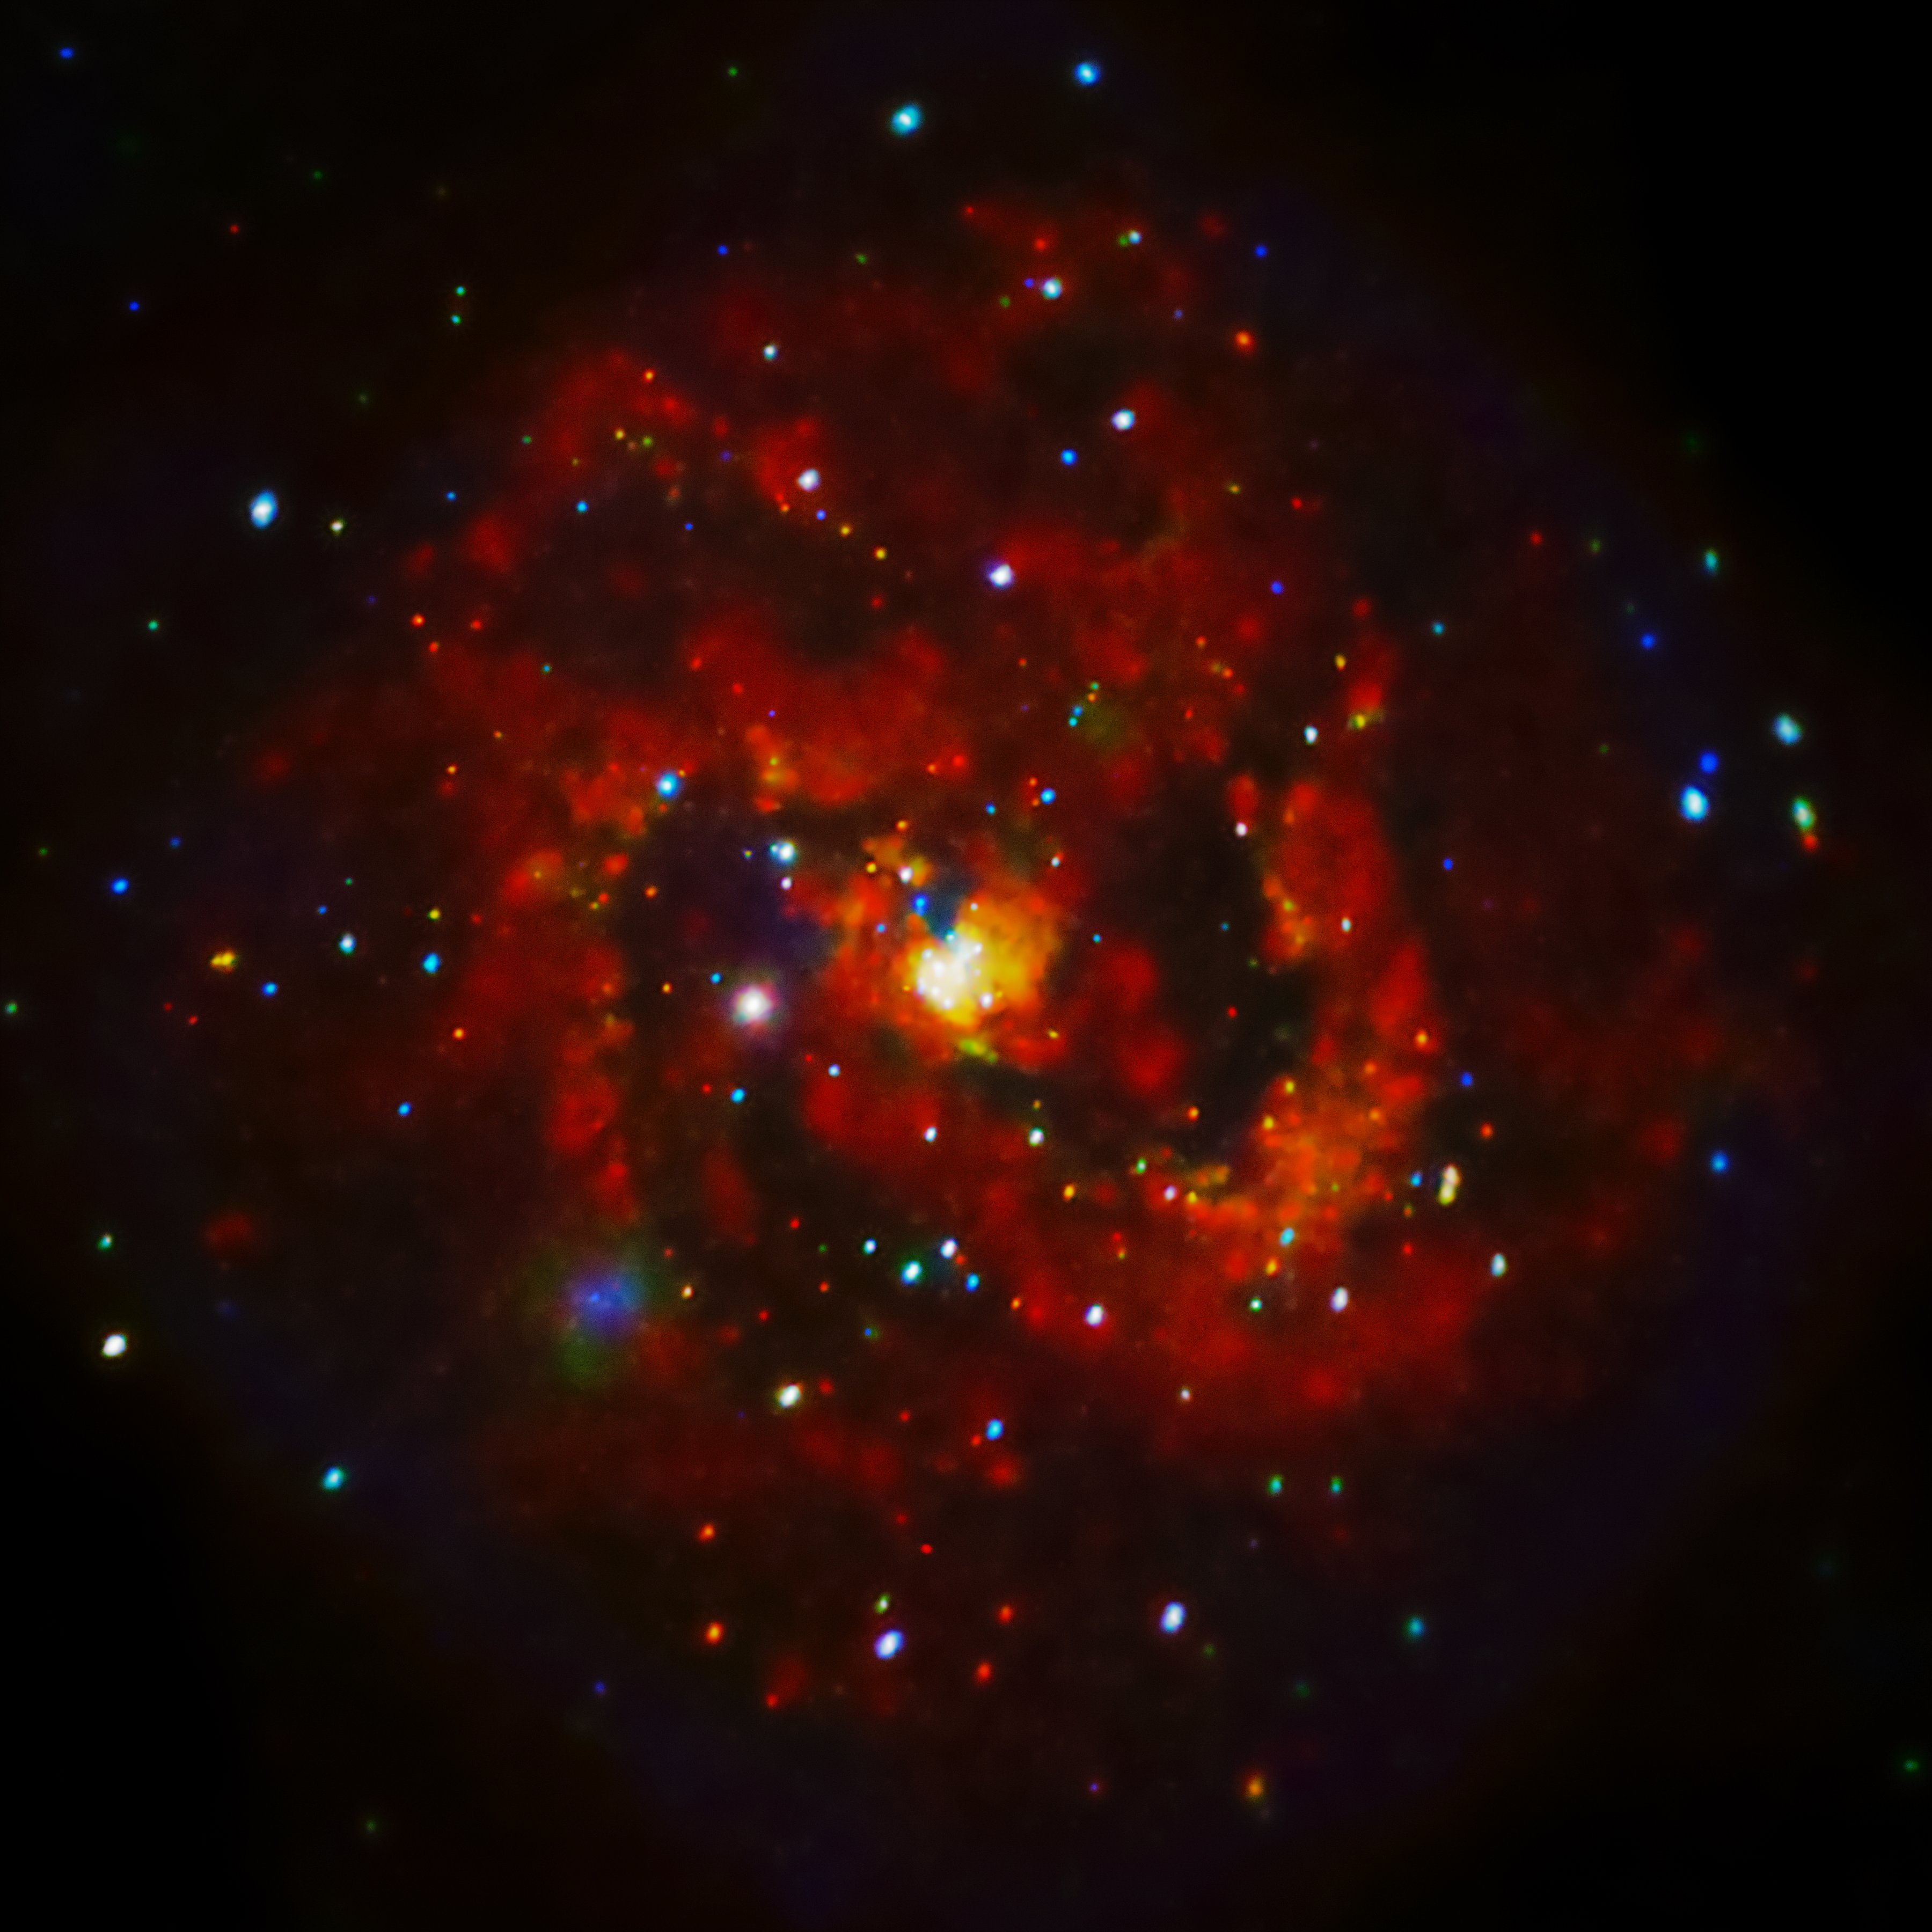 X-rays From A Young Supernova Remnant | NASA